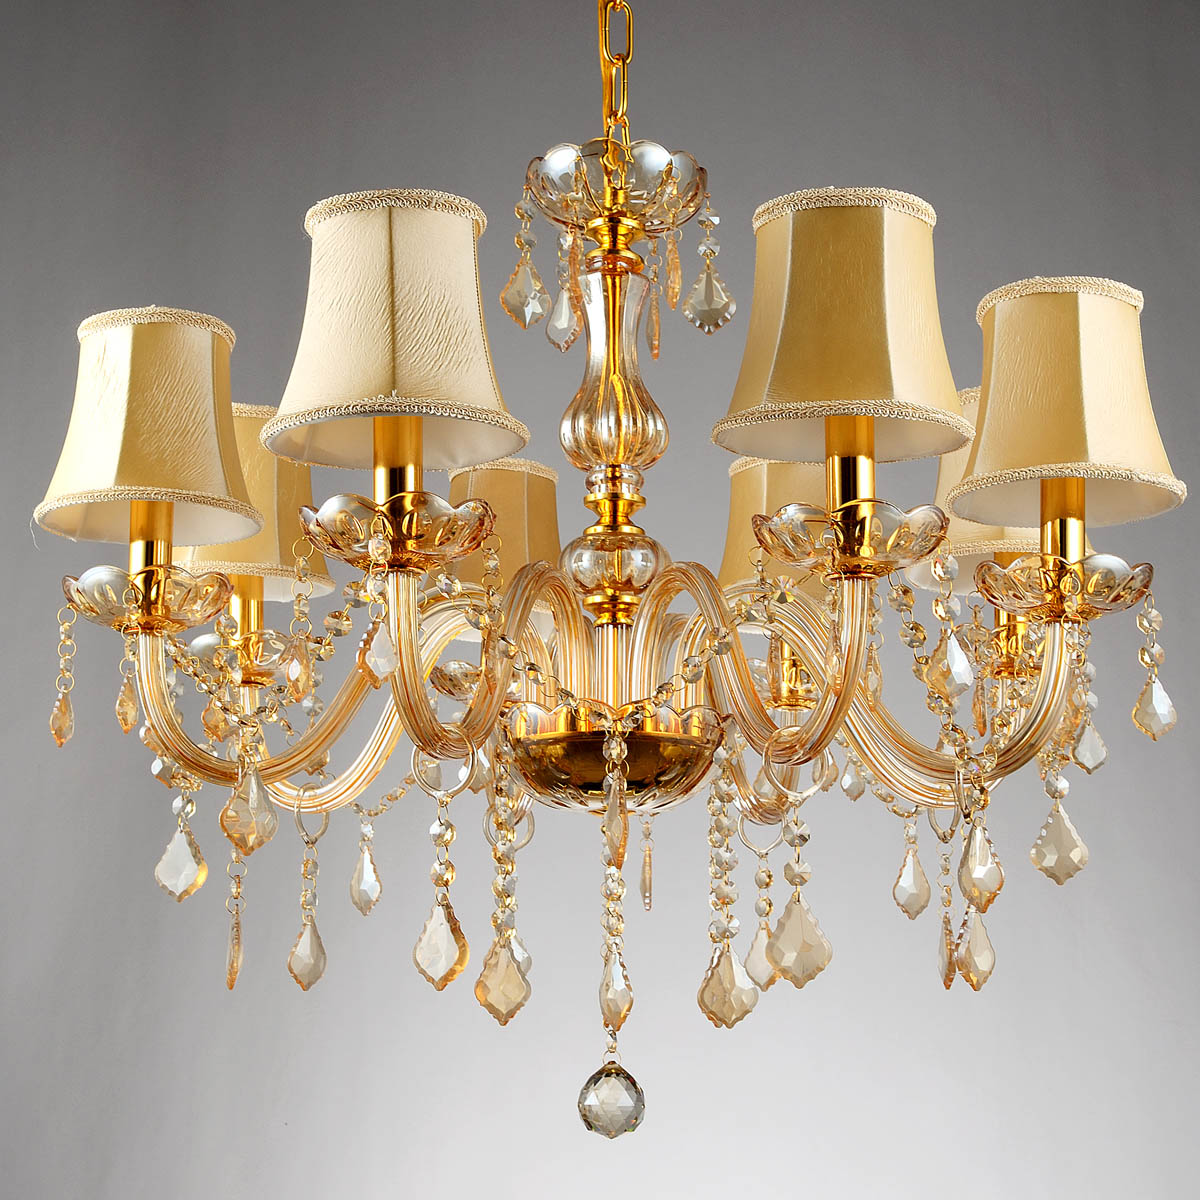 Free ship 68 arms fashion crystal chandelier lighting bedroom free ship 68 arms fashion crystal chandelier lighting bedroom pendant chandelier champagne color gold crystal lighting lamps in pendant lights from lights aloadofball Image collections